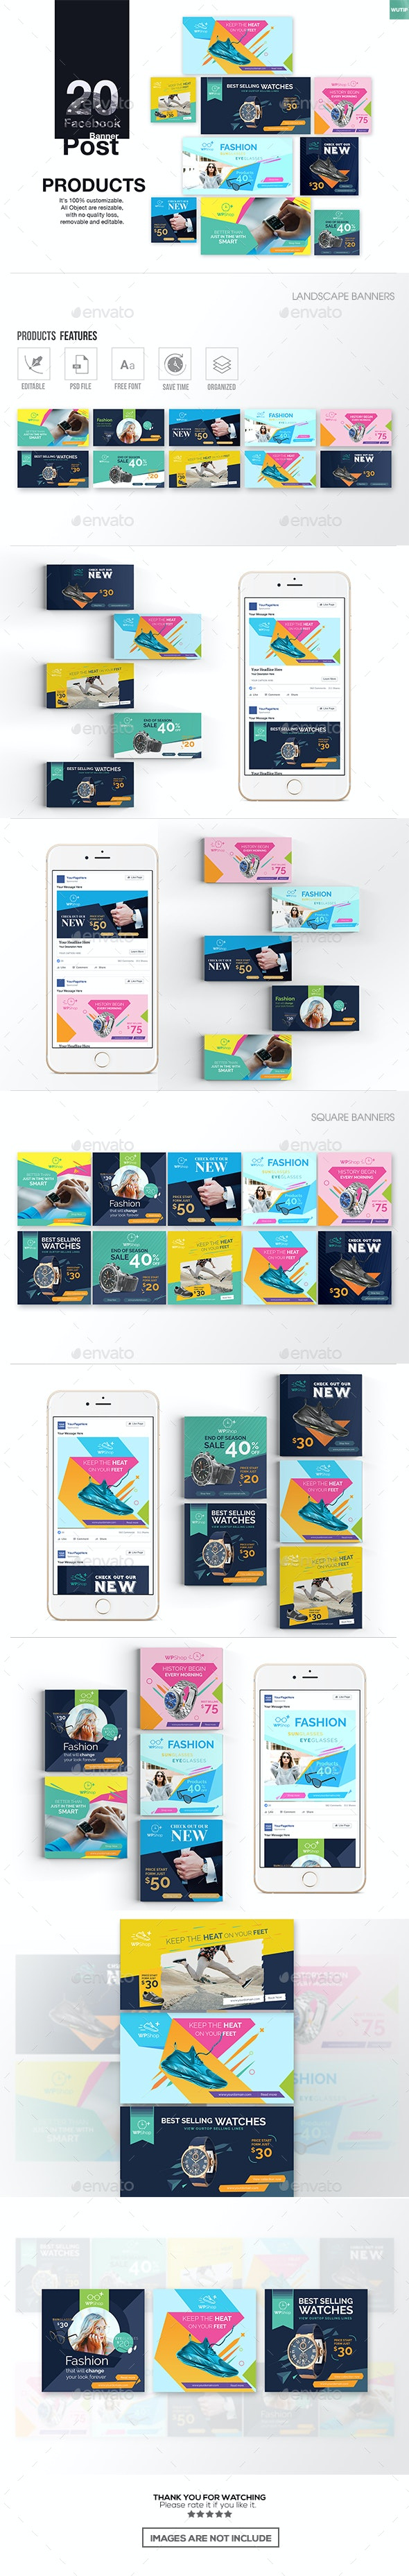 20 Facebook Post Banner-Products - Miscellaneous Social Media